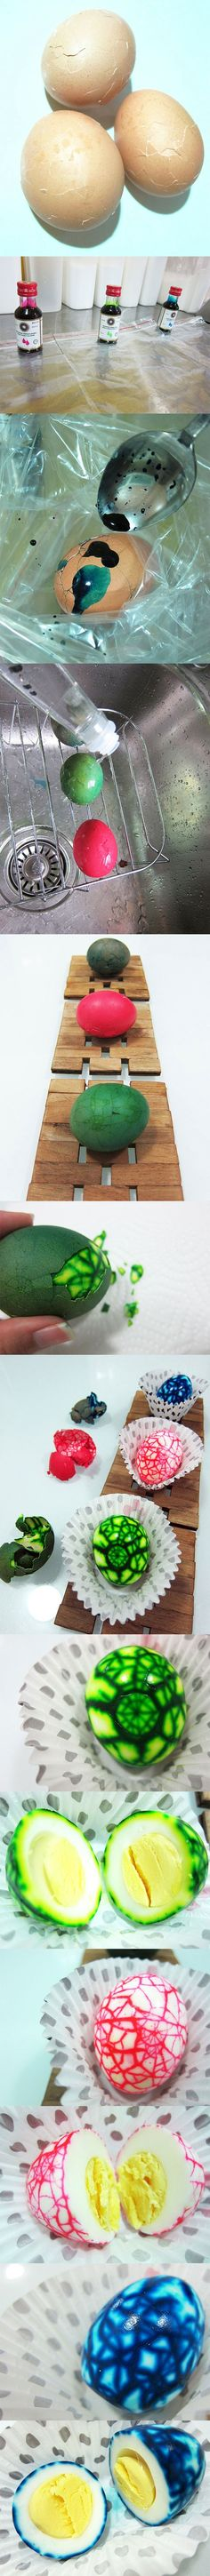 EPIC EASTER EGGS